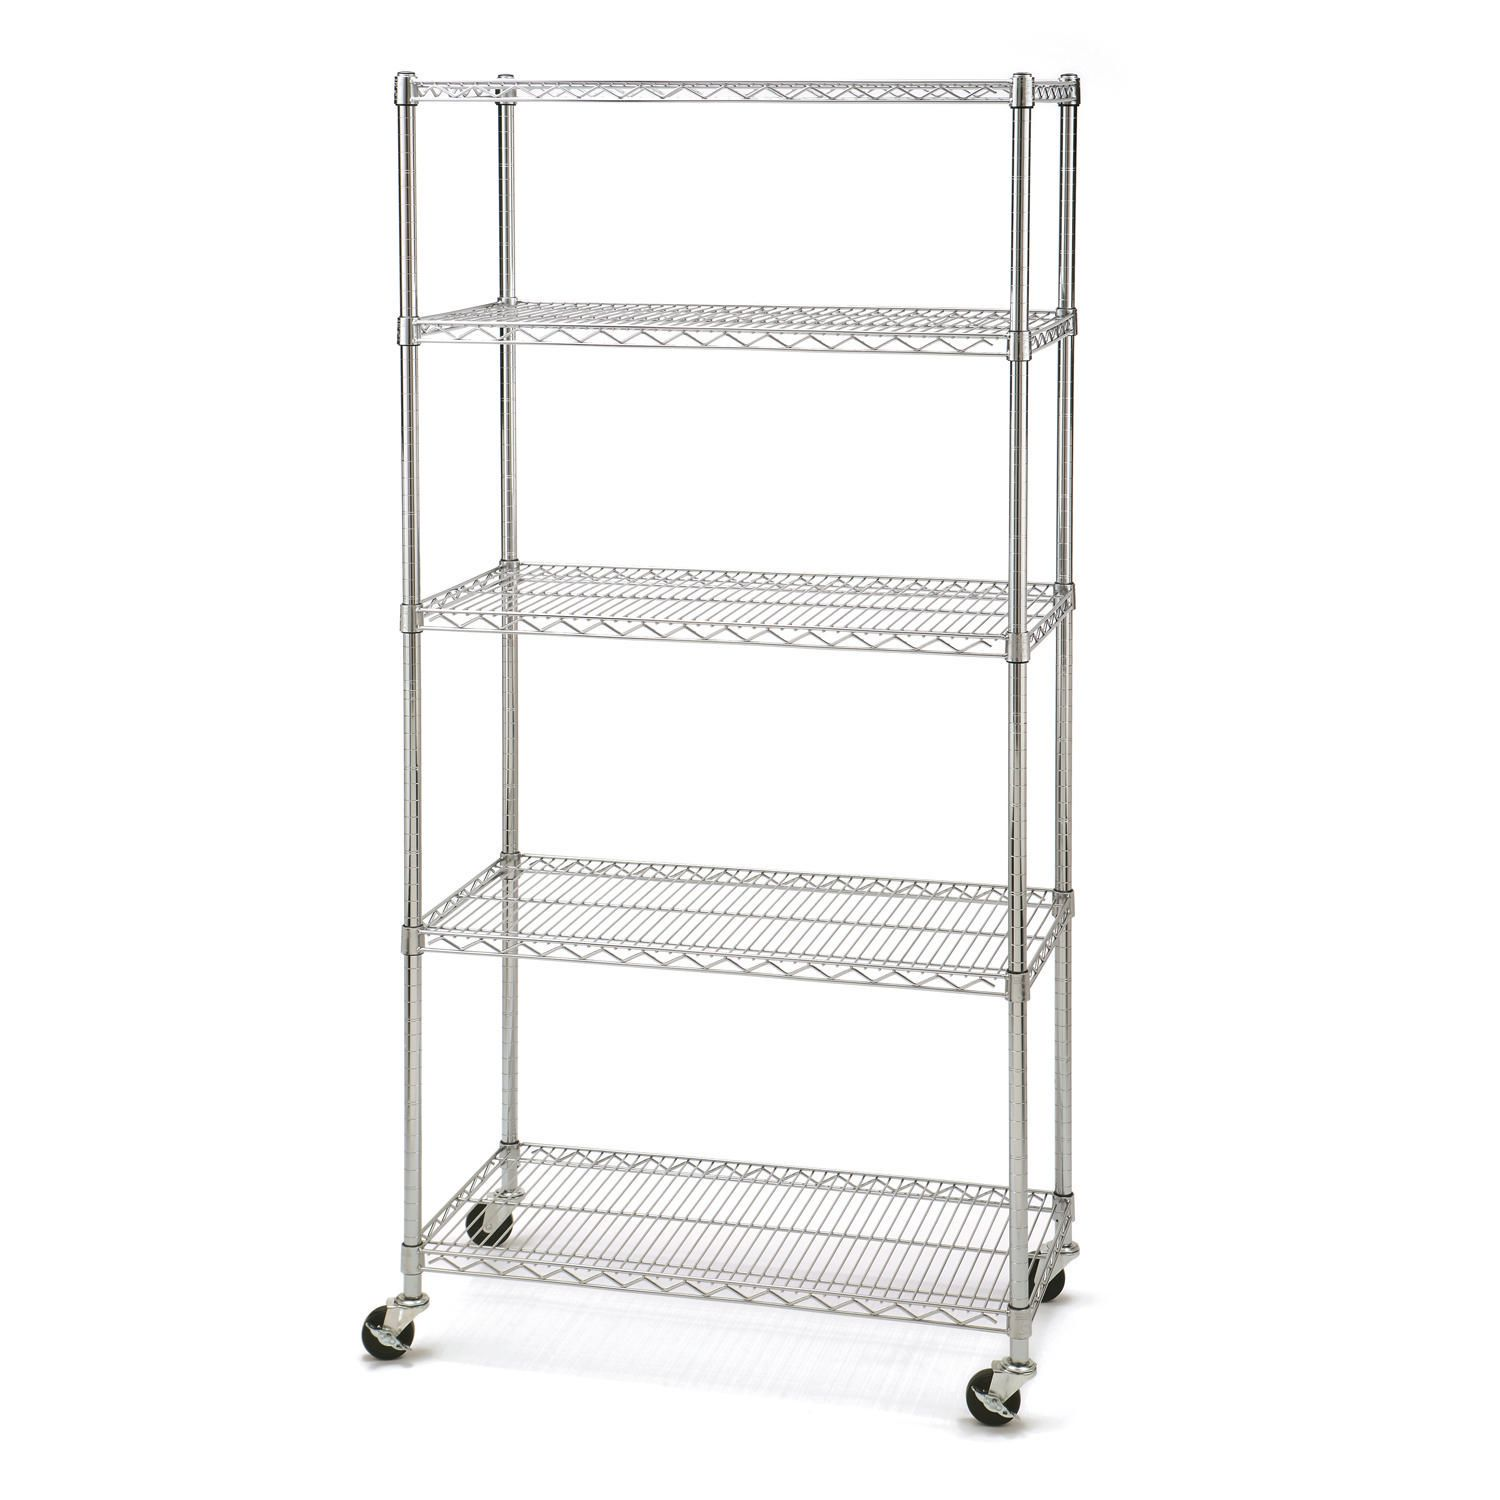 Seville Classics 5 Shelf Shelving with Wheels | Walmart Canada